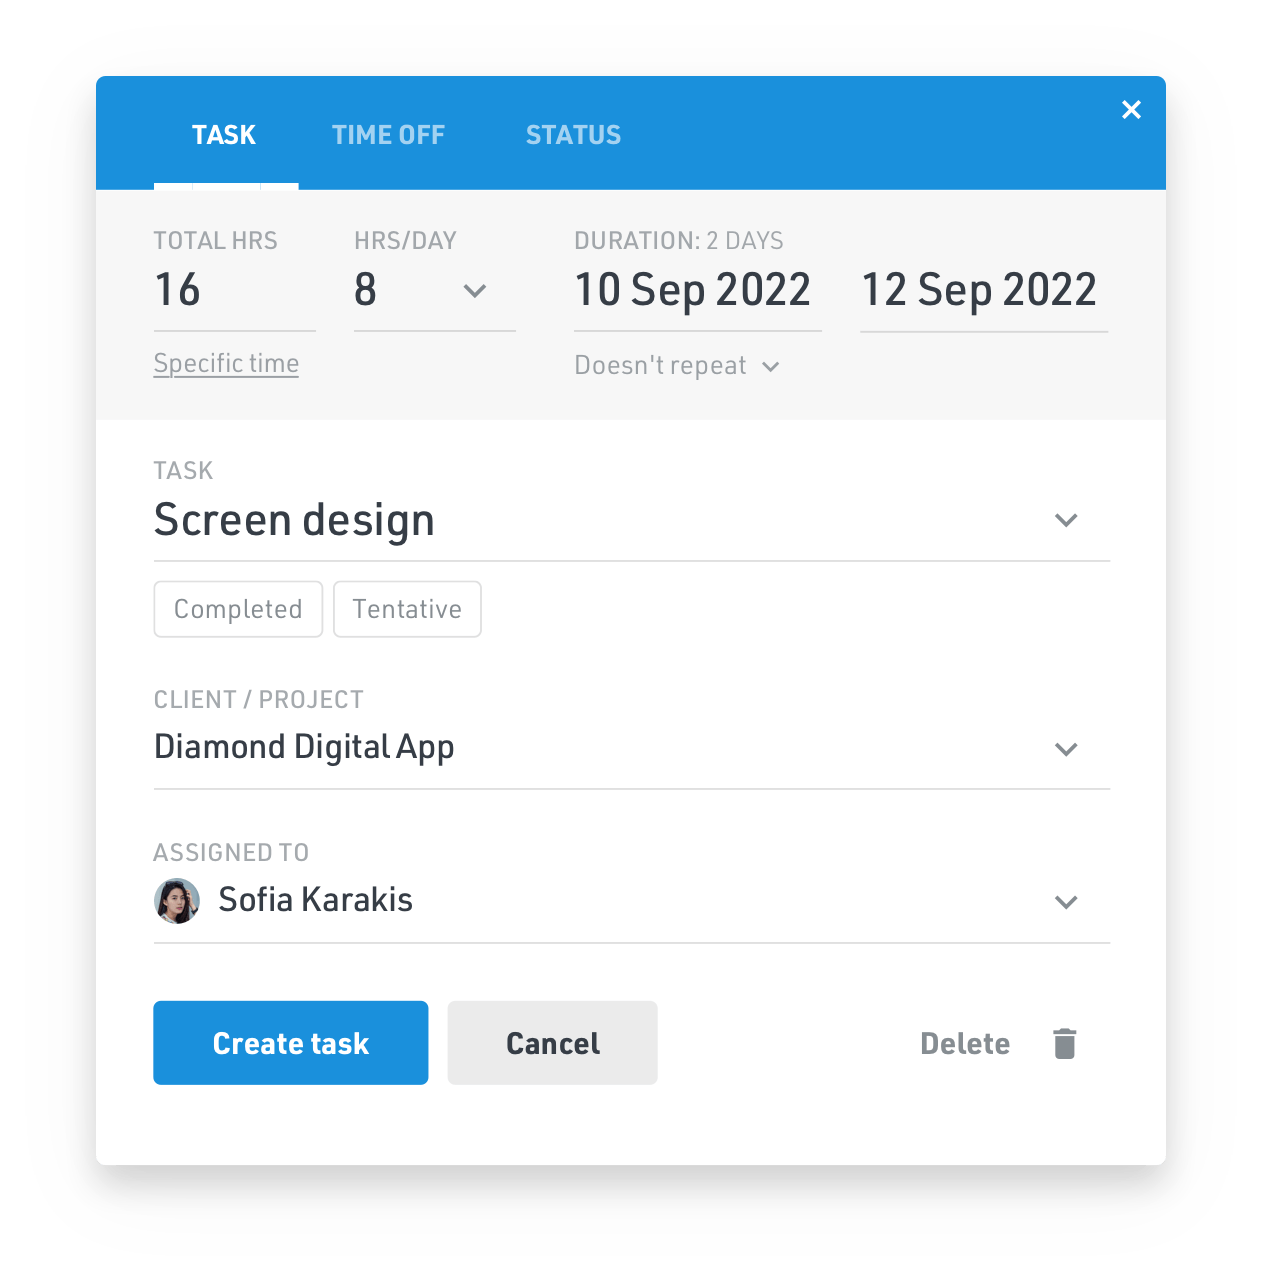 Add a task, time off and set a status to a team member